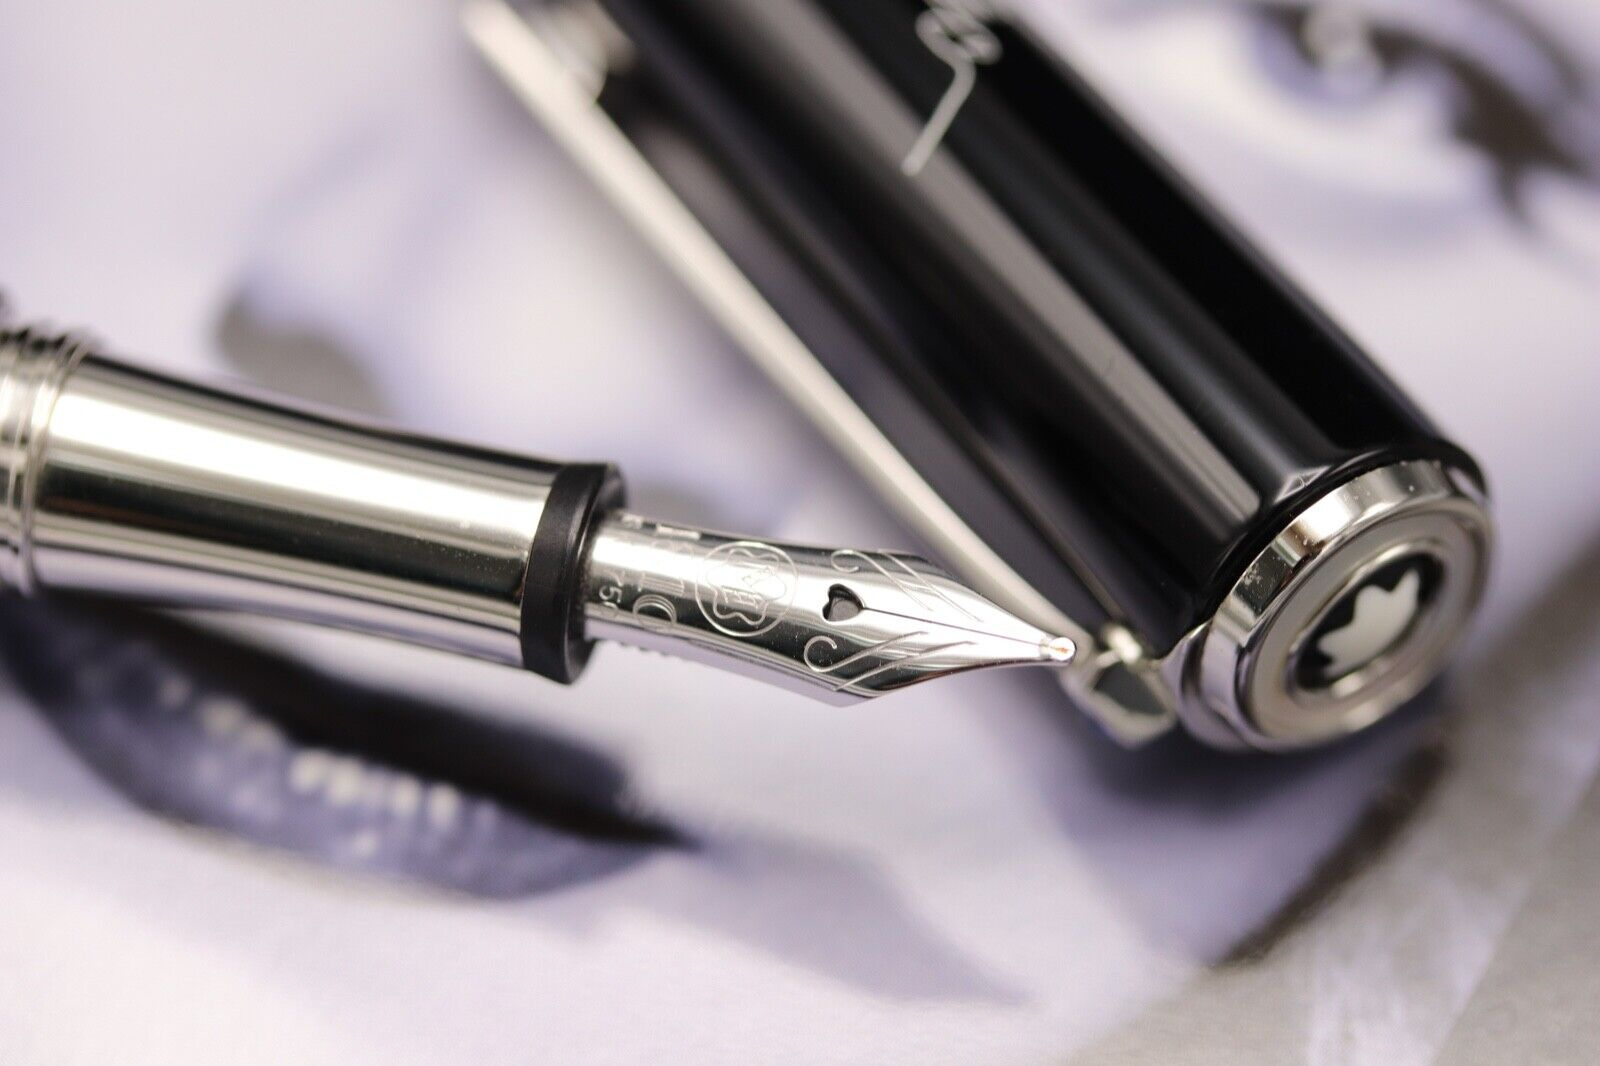 Montblanc Diva Line Marlene Dietrich Special Edition Fountain Pen - NEW MARCH 21 2